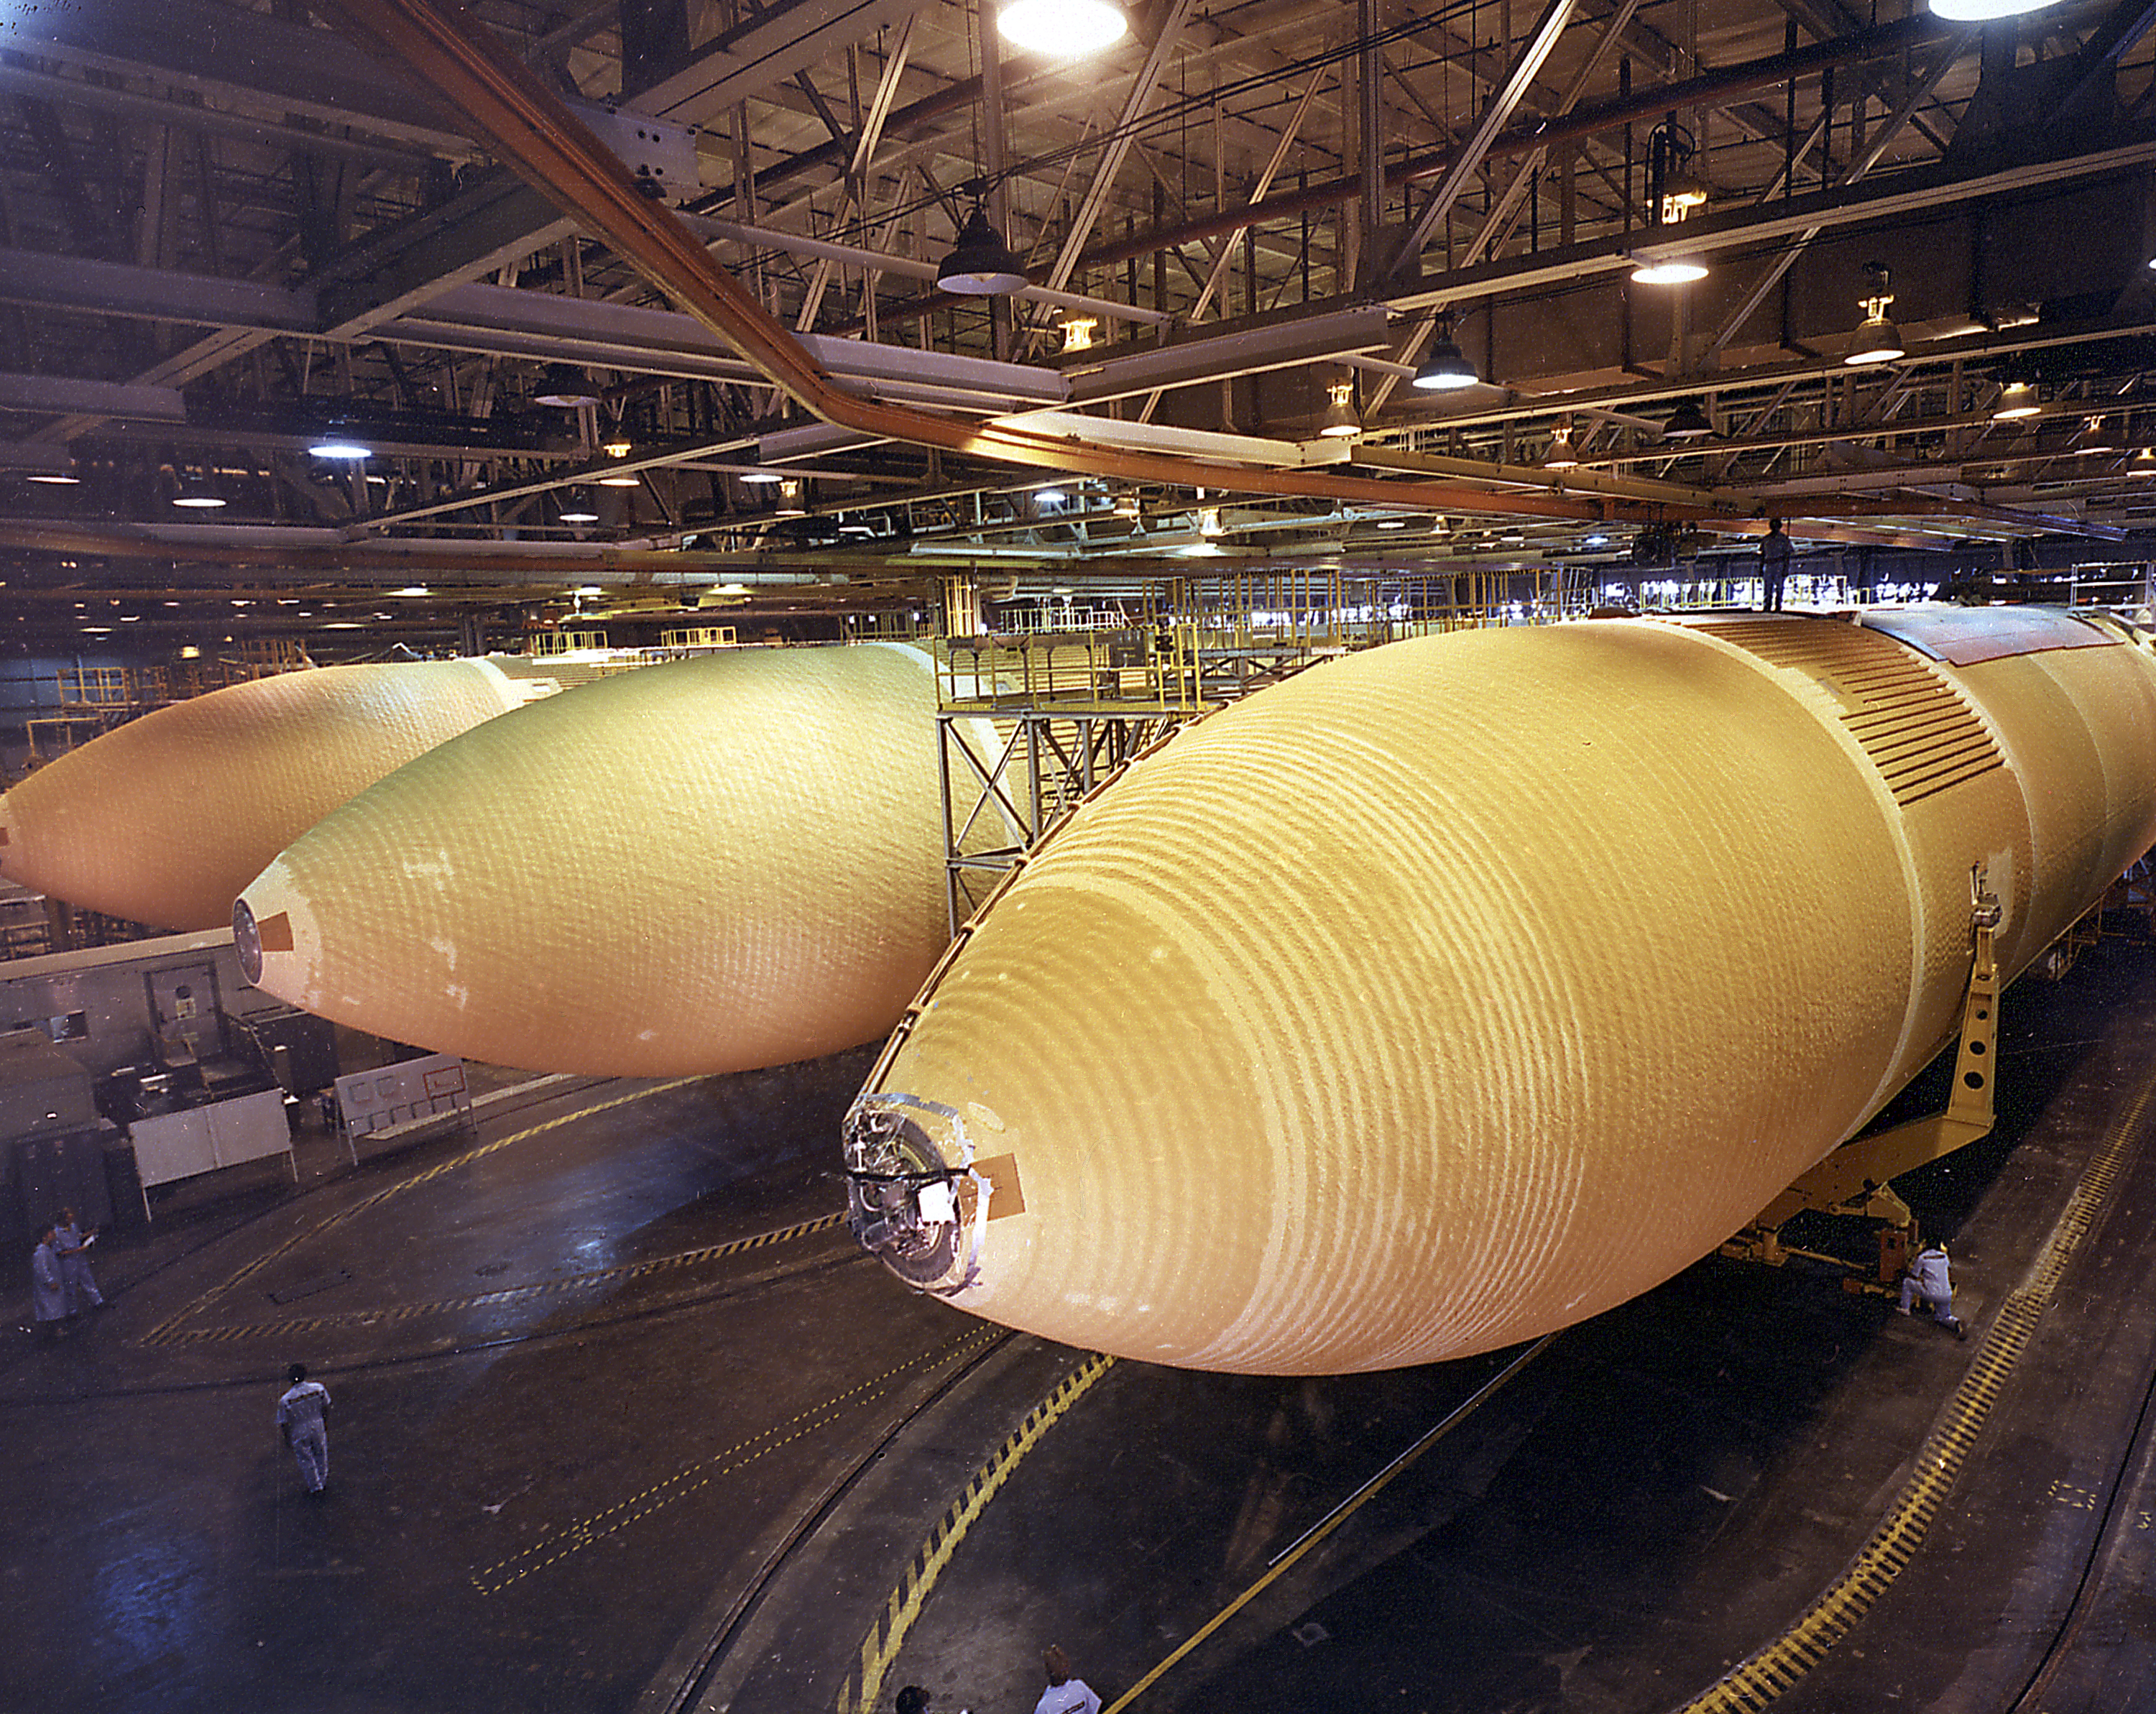 space shuttle oxygen tank - photo #20